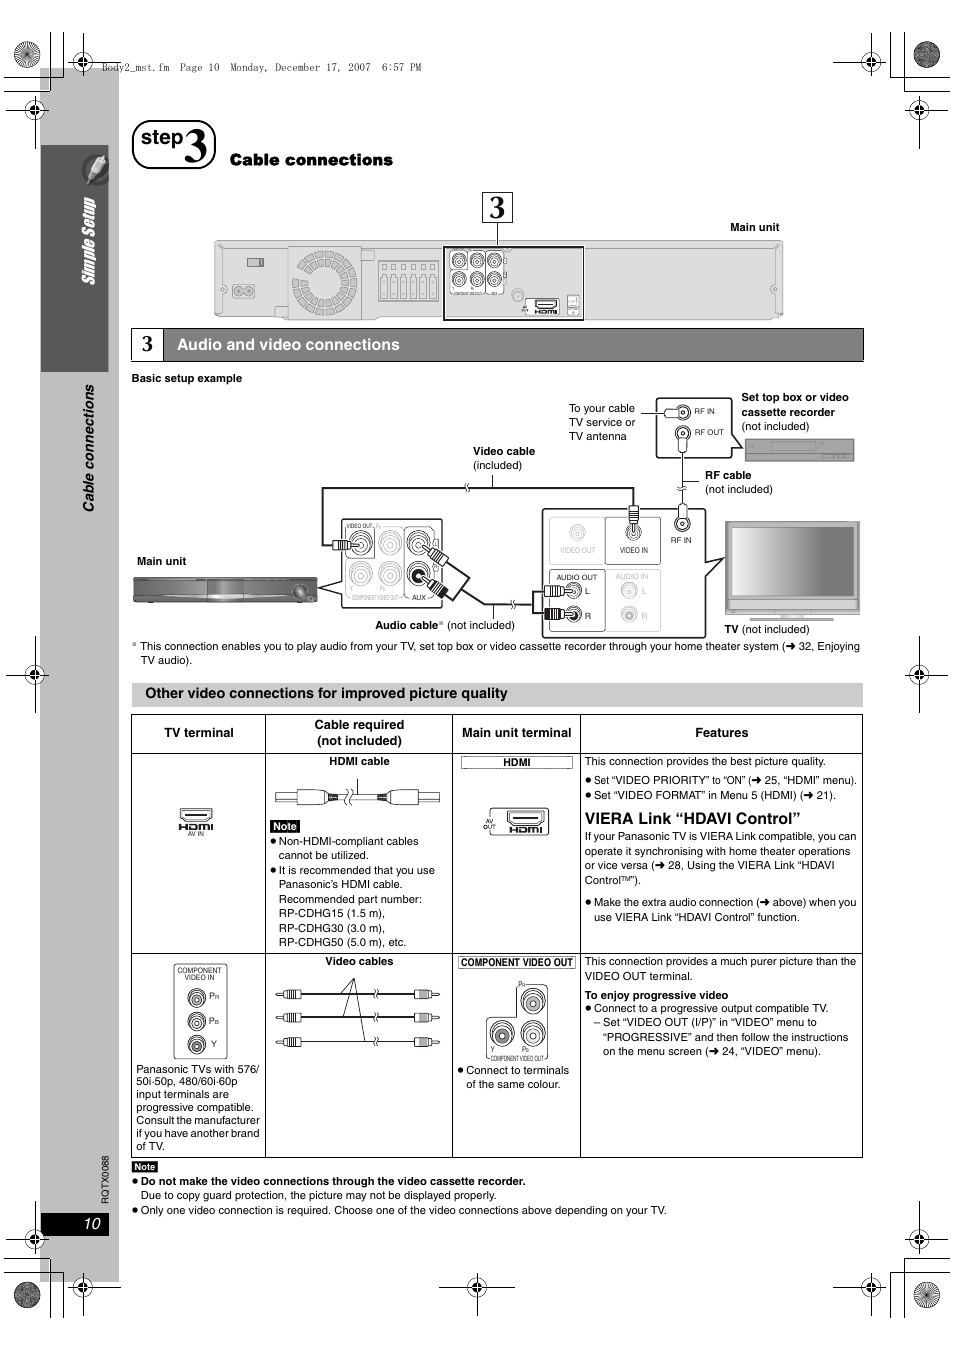 step si mp le s etu p cable connections panasonic sc pt465 user rh manualsdir com Akai 42 Inch Plasma TV Panasonic Plasma TV Schematics